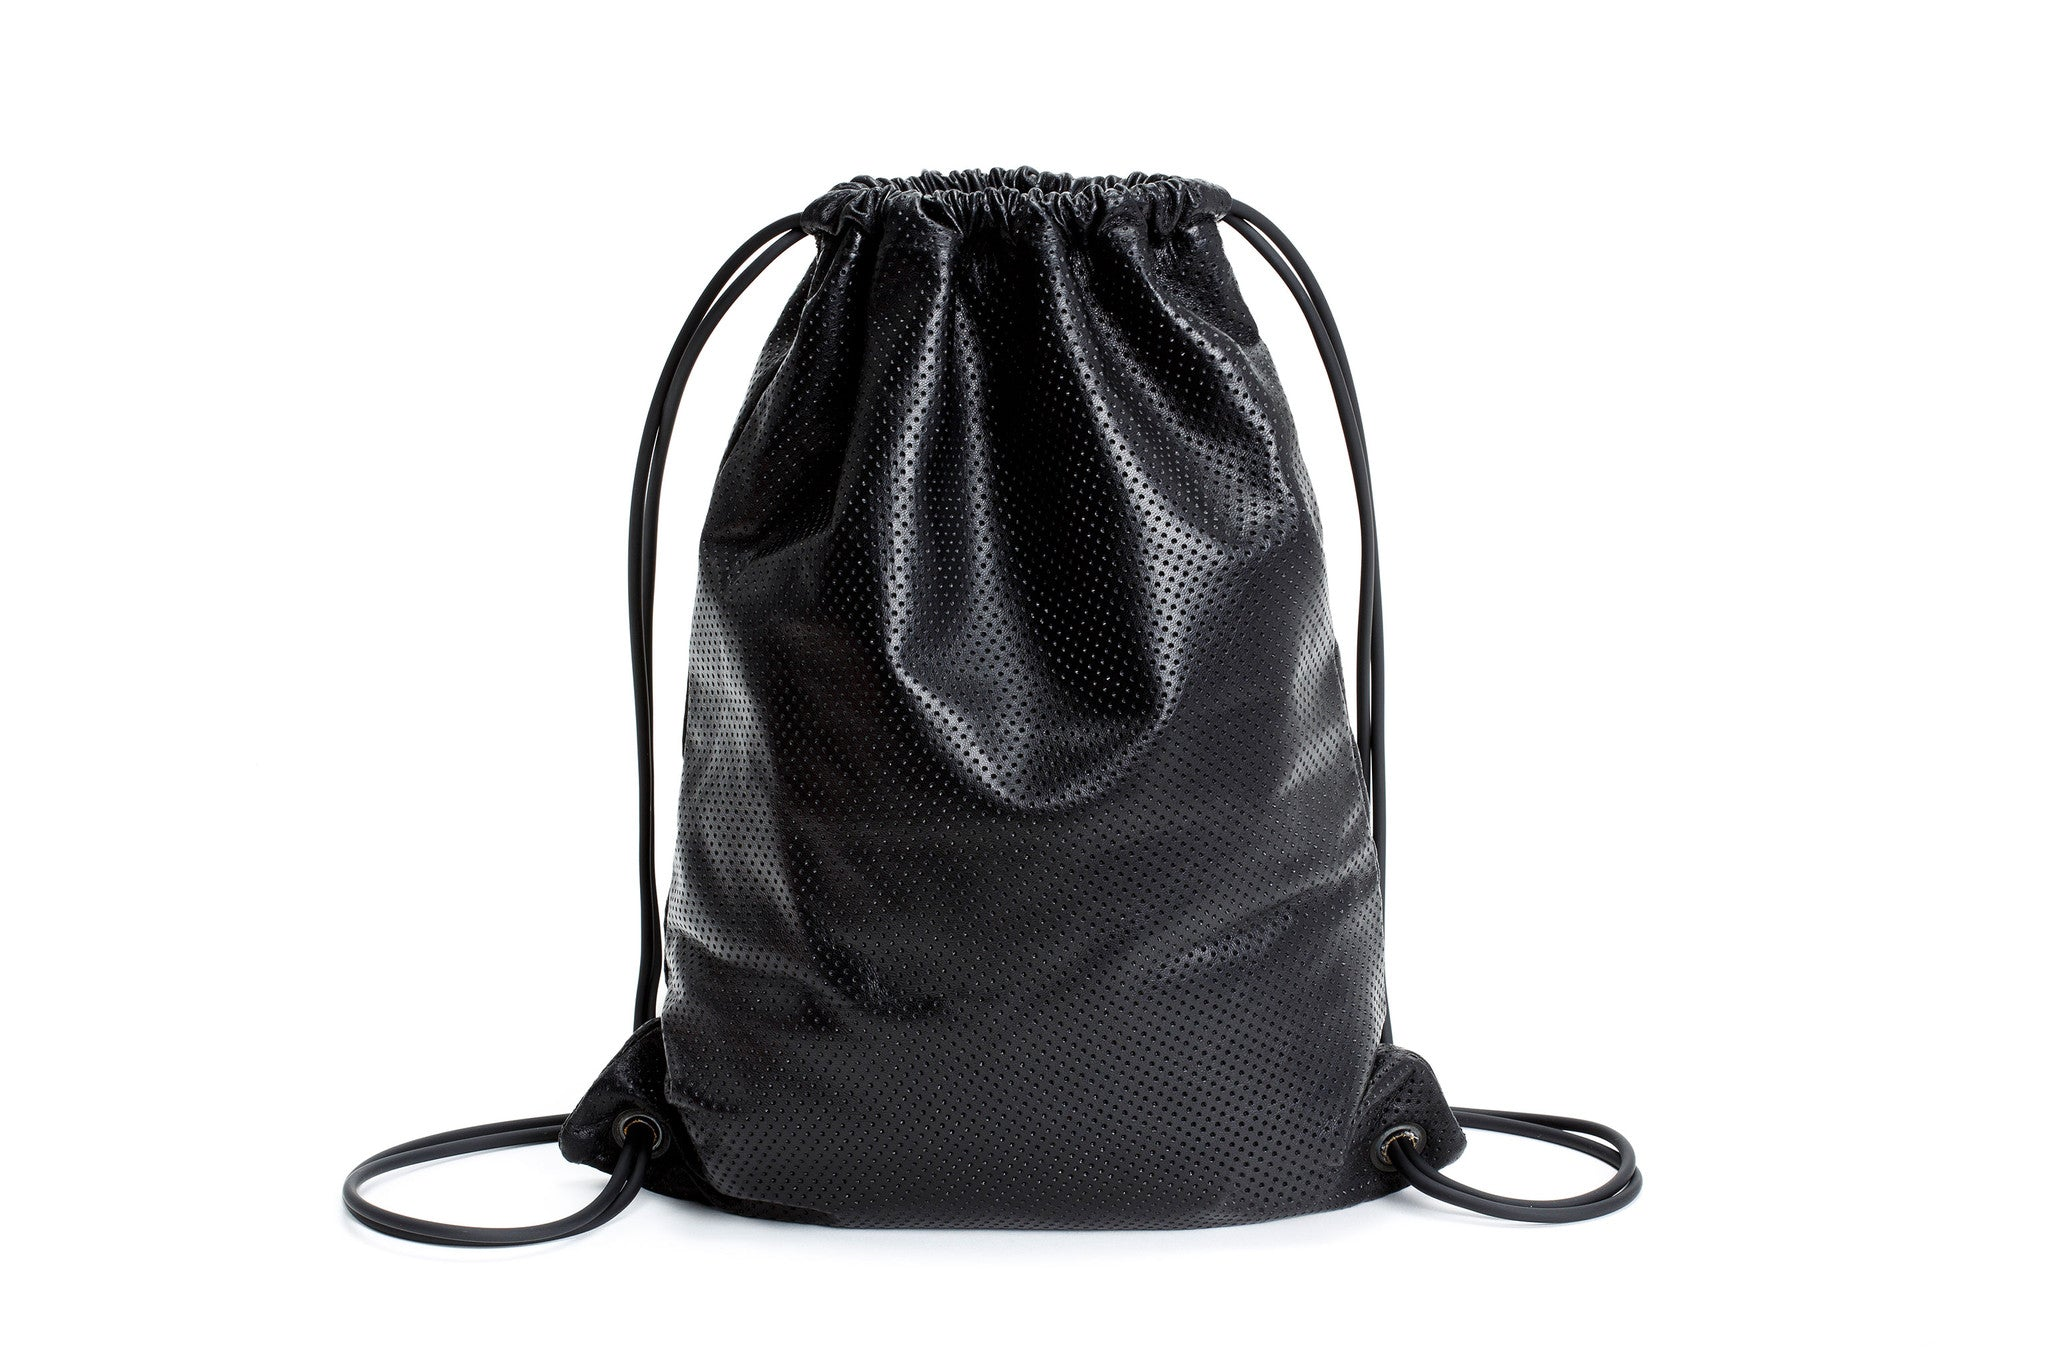 Black perforated-leather Sackpack, black leather bag